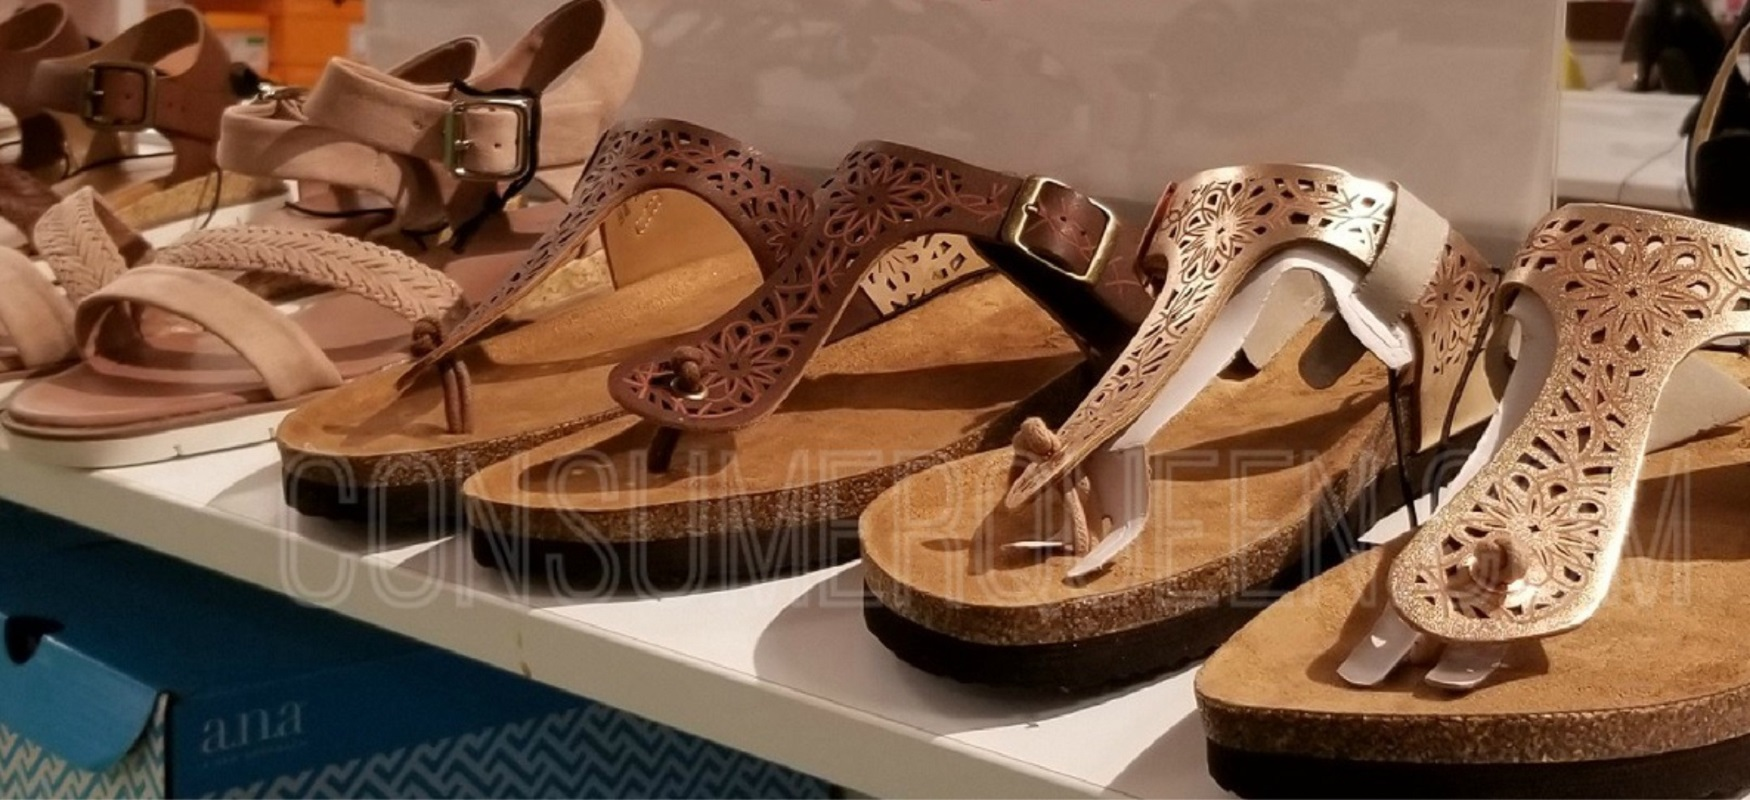 BOGO Free Sandals at Kohl's + 20% Off – Today Only! *EXPIRED*